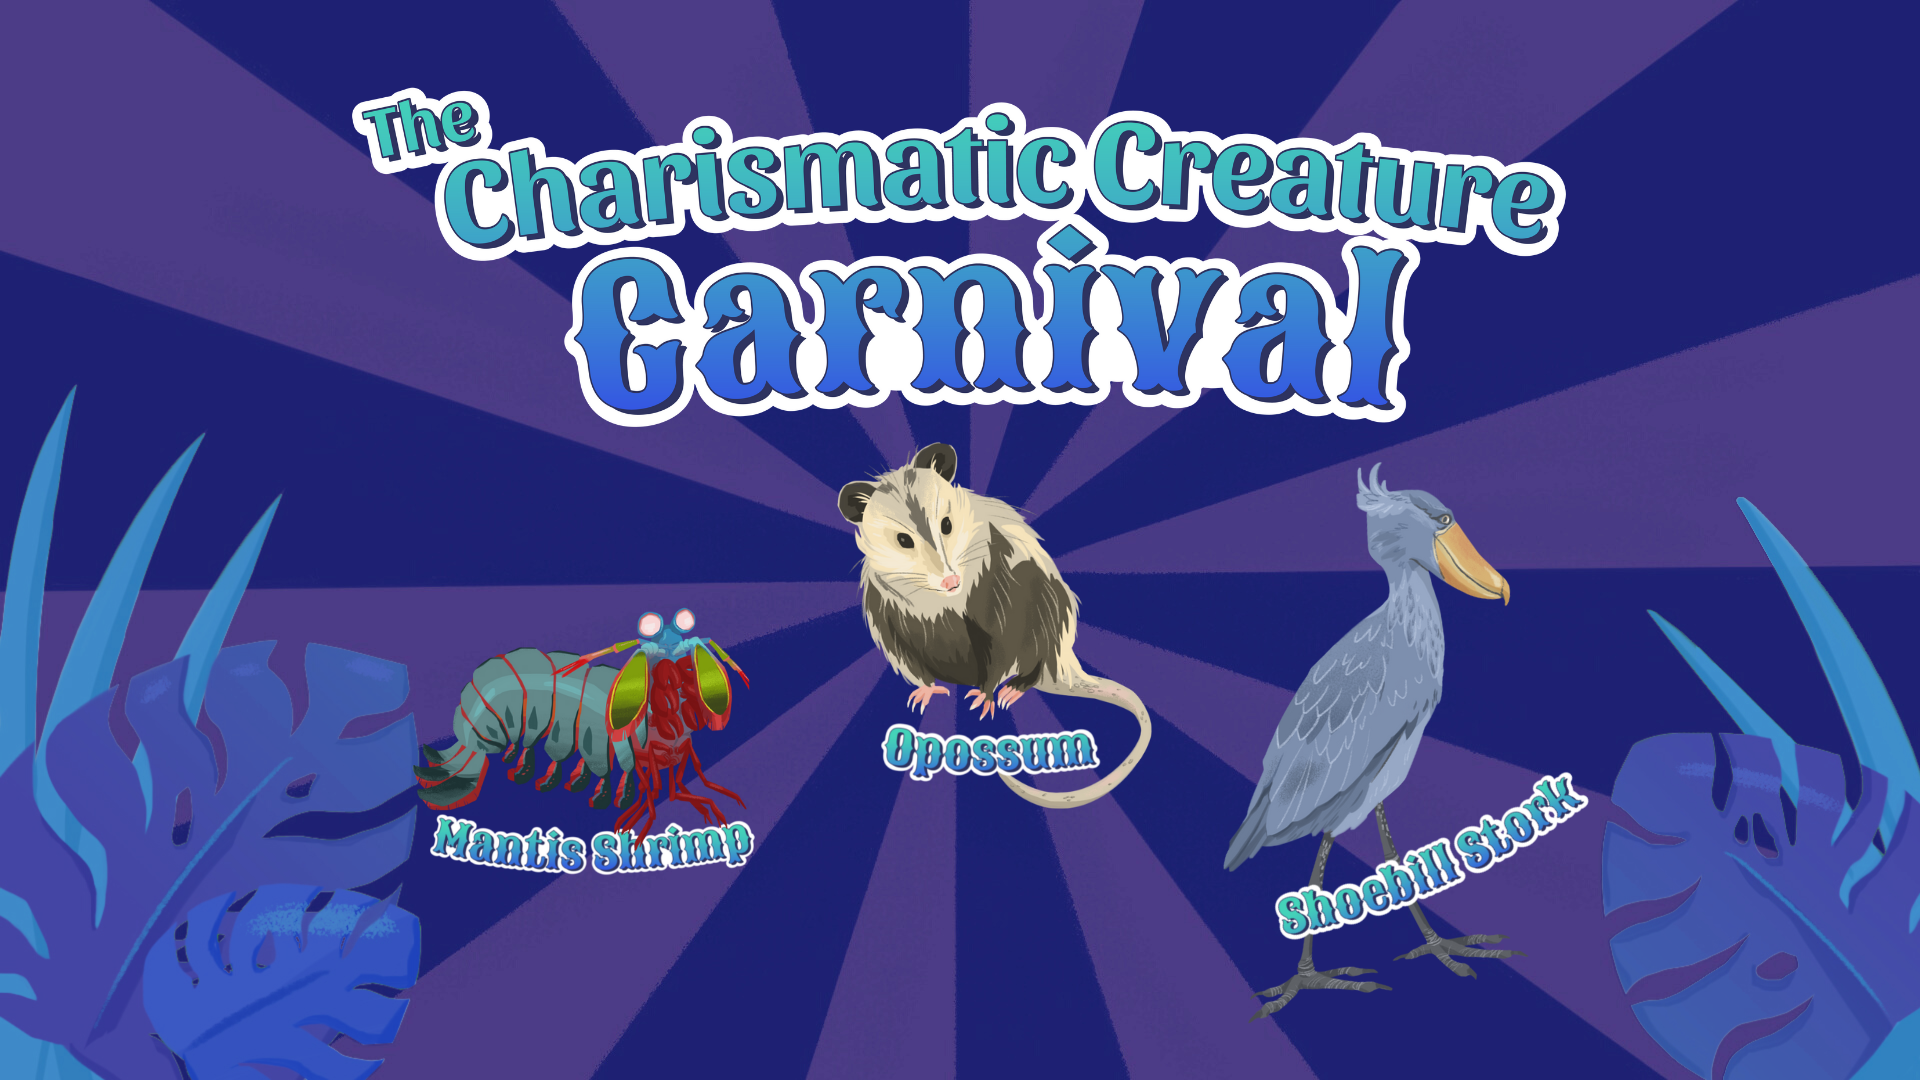 purple carnival-like swirls with cartoon images of an oppossum, a mantis shrimp, and a shoebill stork in the foreground